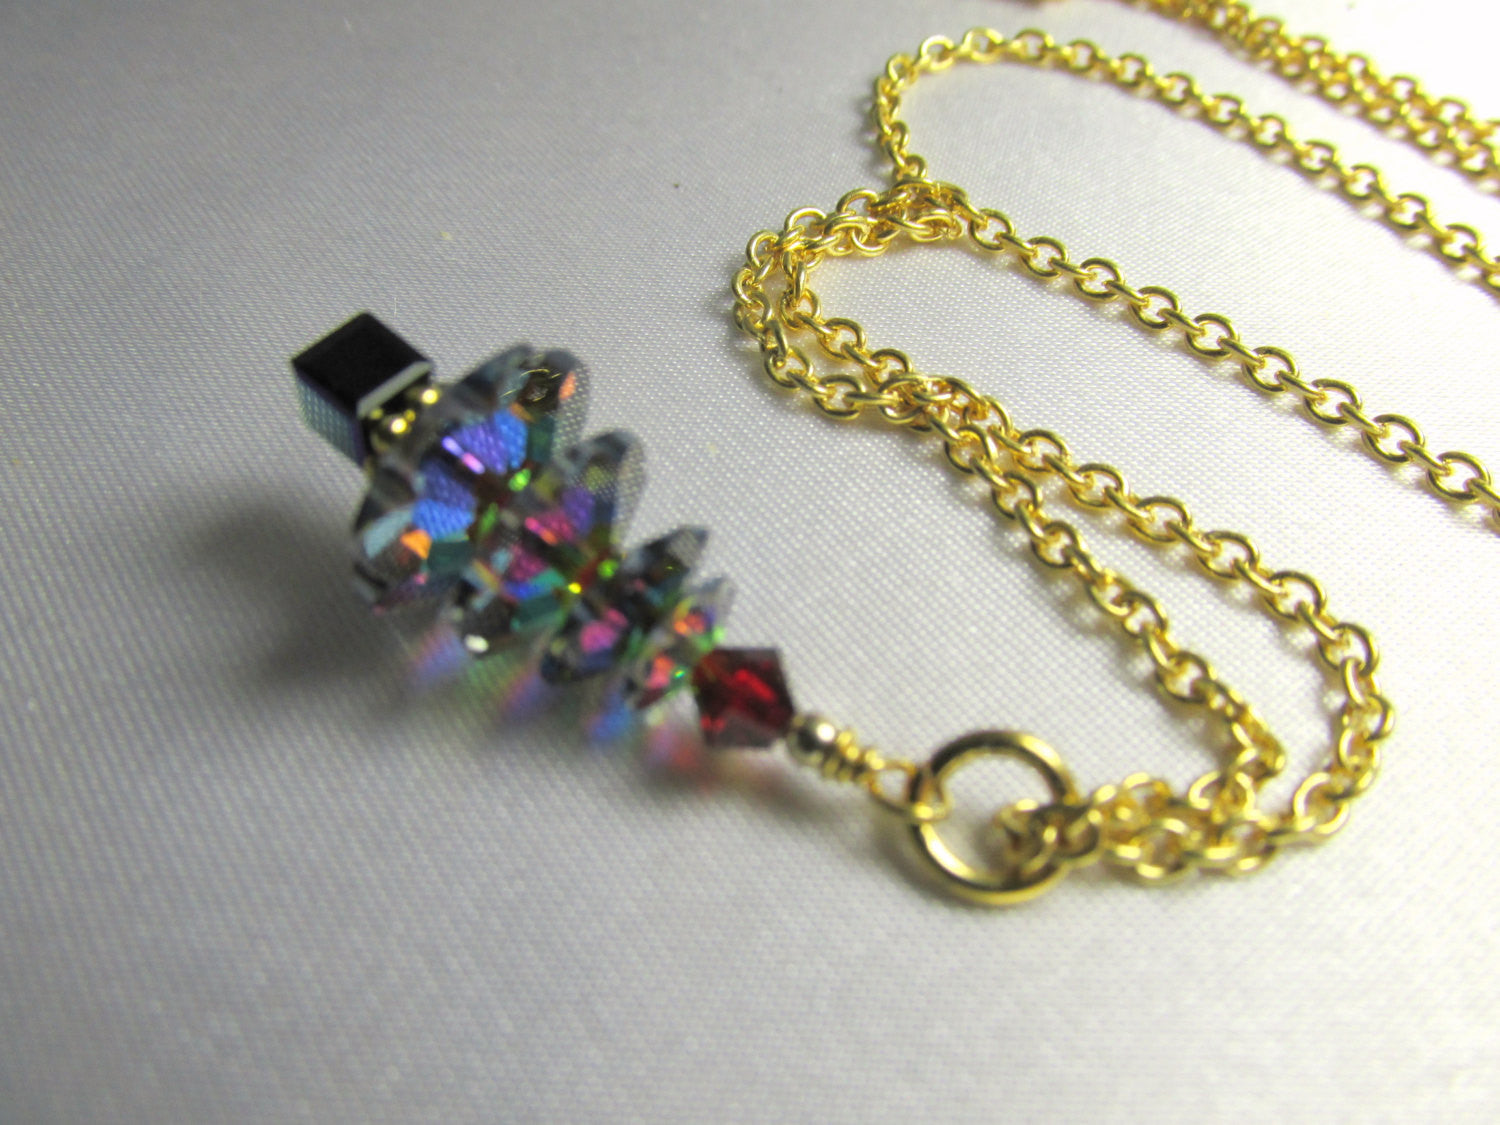 Christmas Tree Necklace or Pendant in Swarovski Vitrail Medium in Sterling or Gold Fill - Odyssey Creations